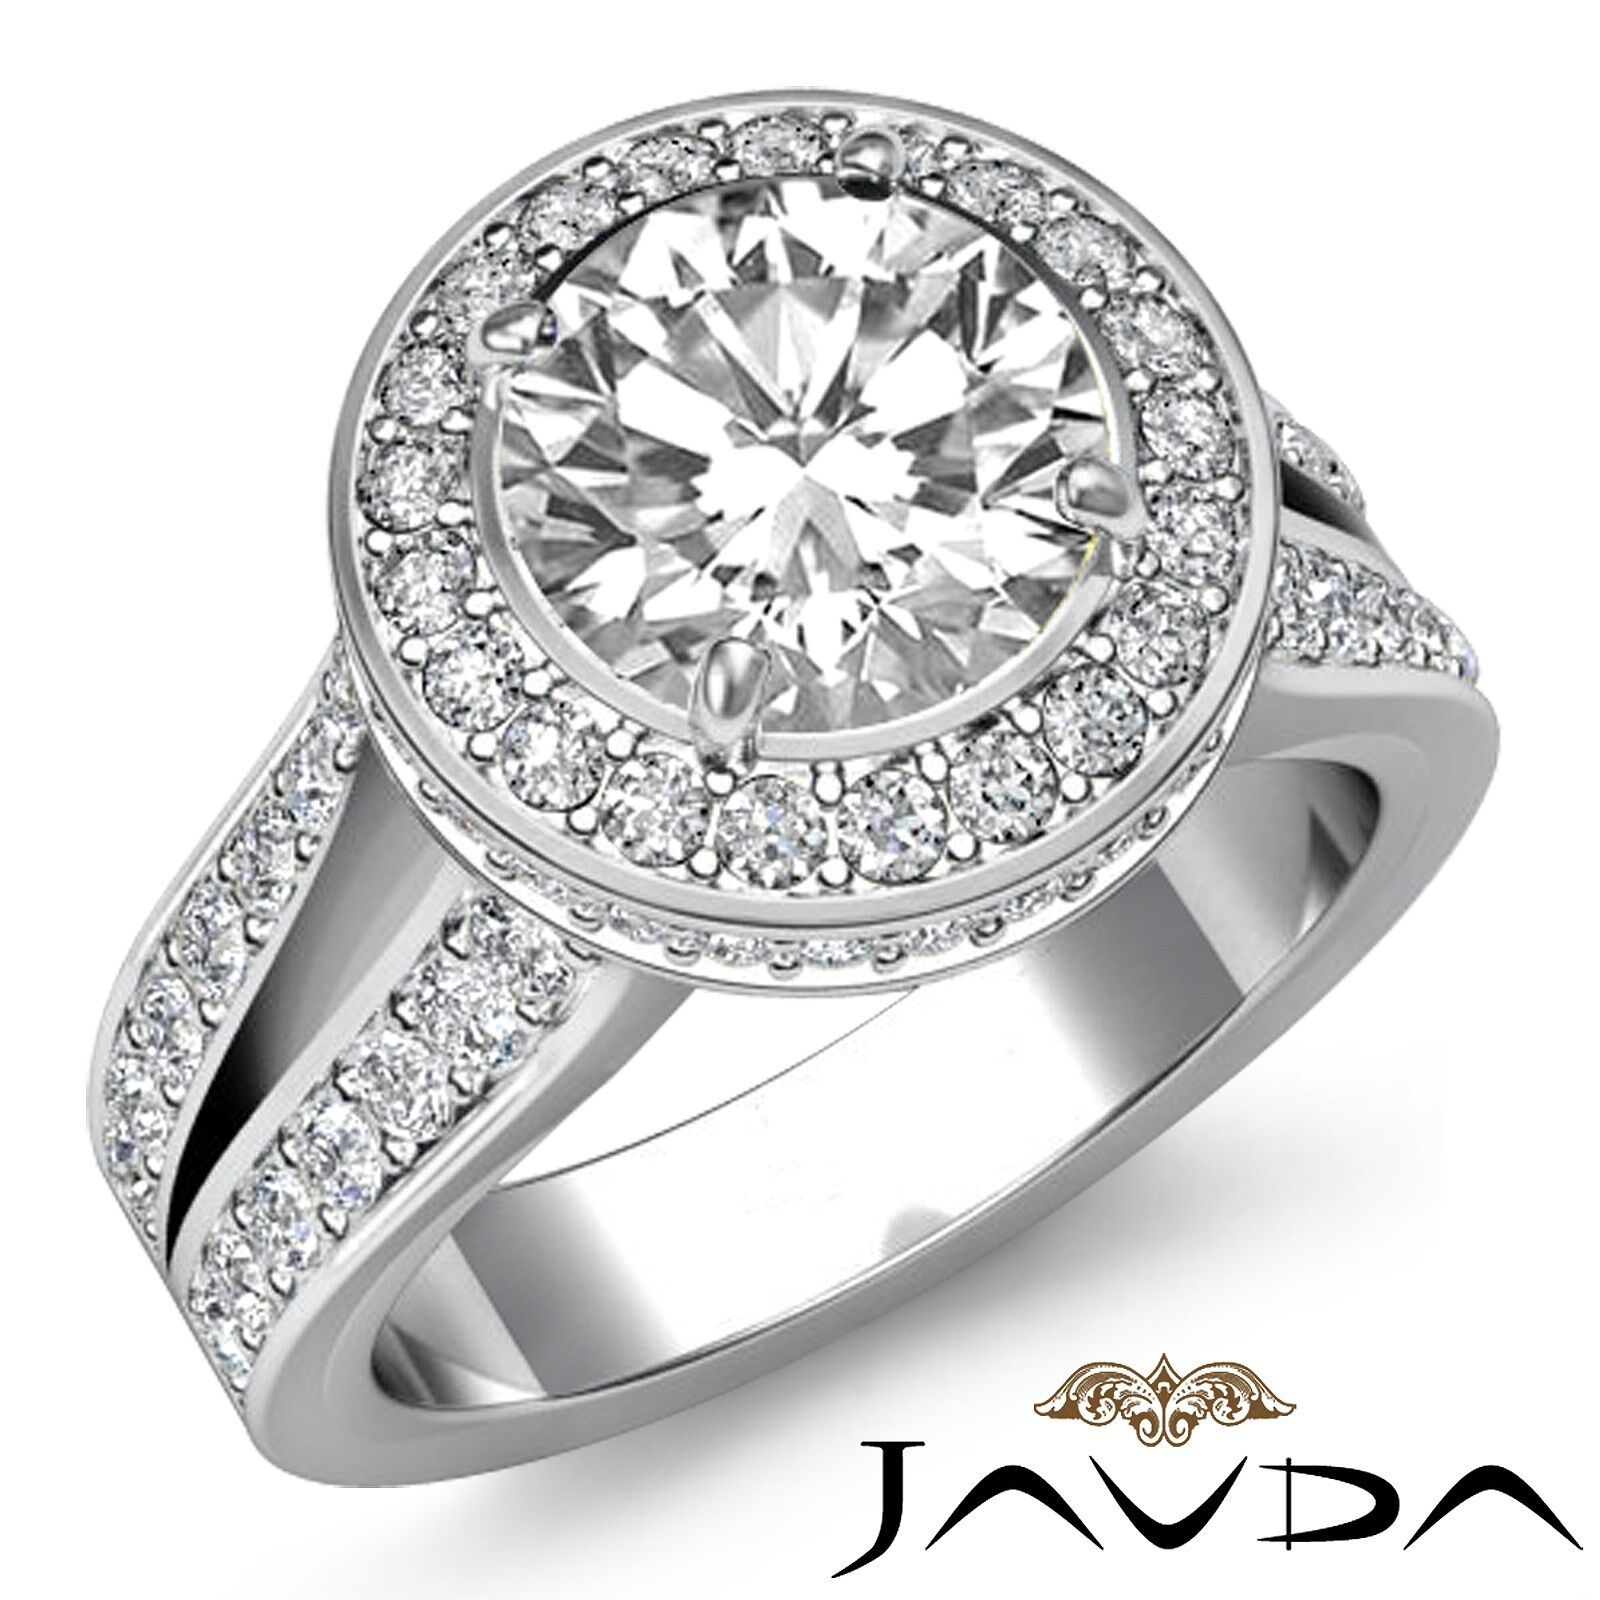 Circa Halo Split Shank Round Shape Diamond Engagement Pave Ring GIA F VS2 2.8 Ct